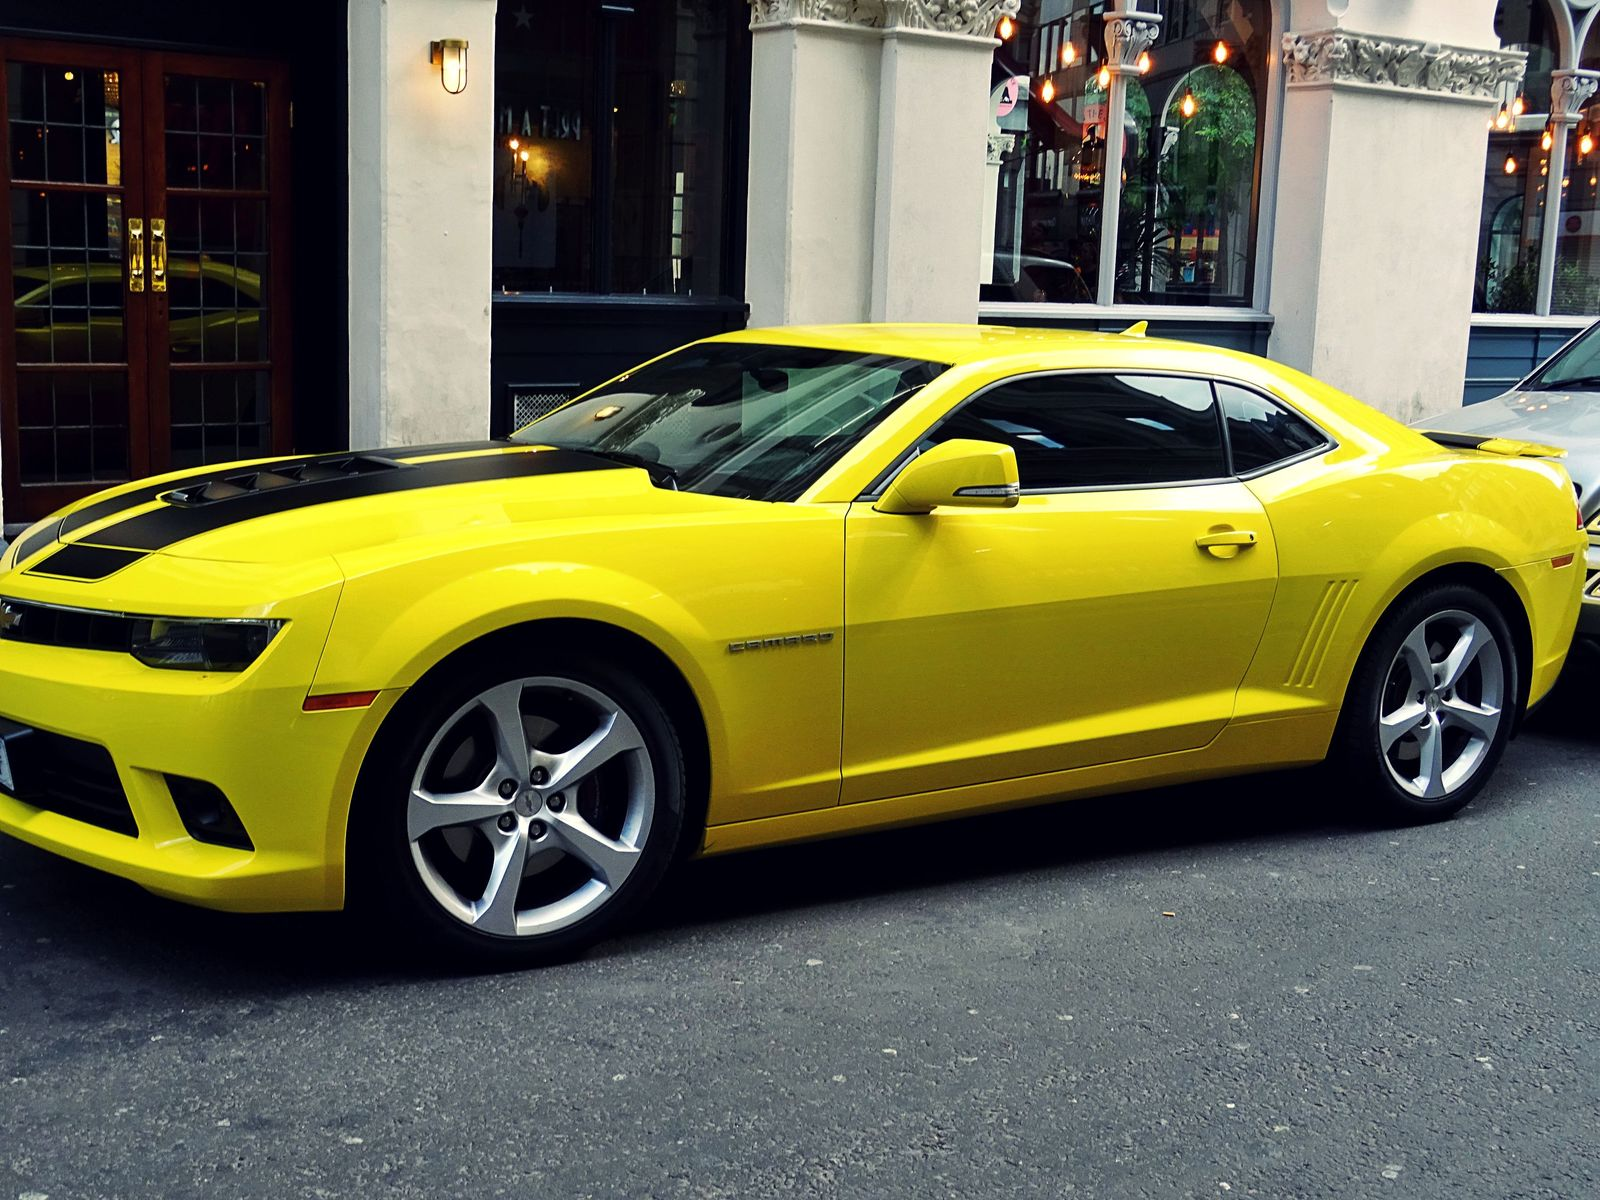 Camaro Insurance Cost >> A Guide For Chevrolet Camaro Auto Insurance Costs Updated